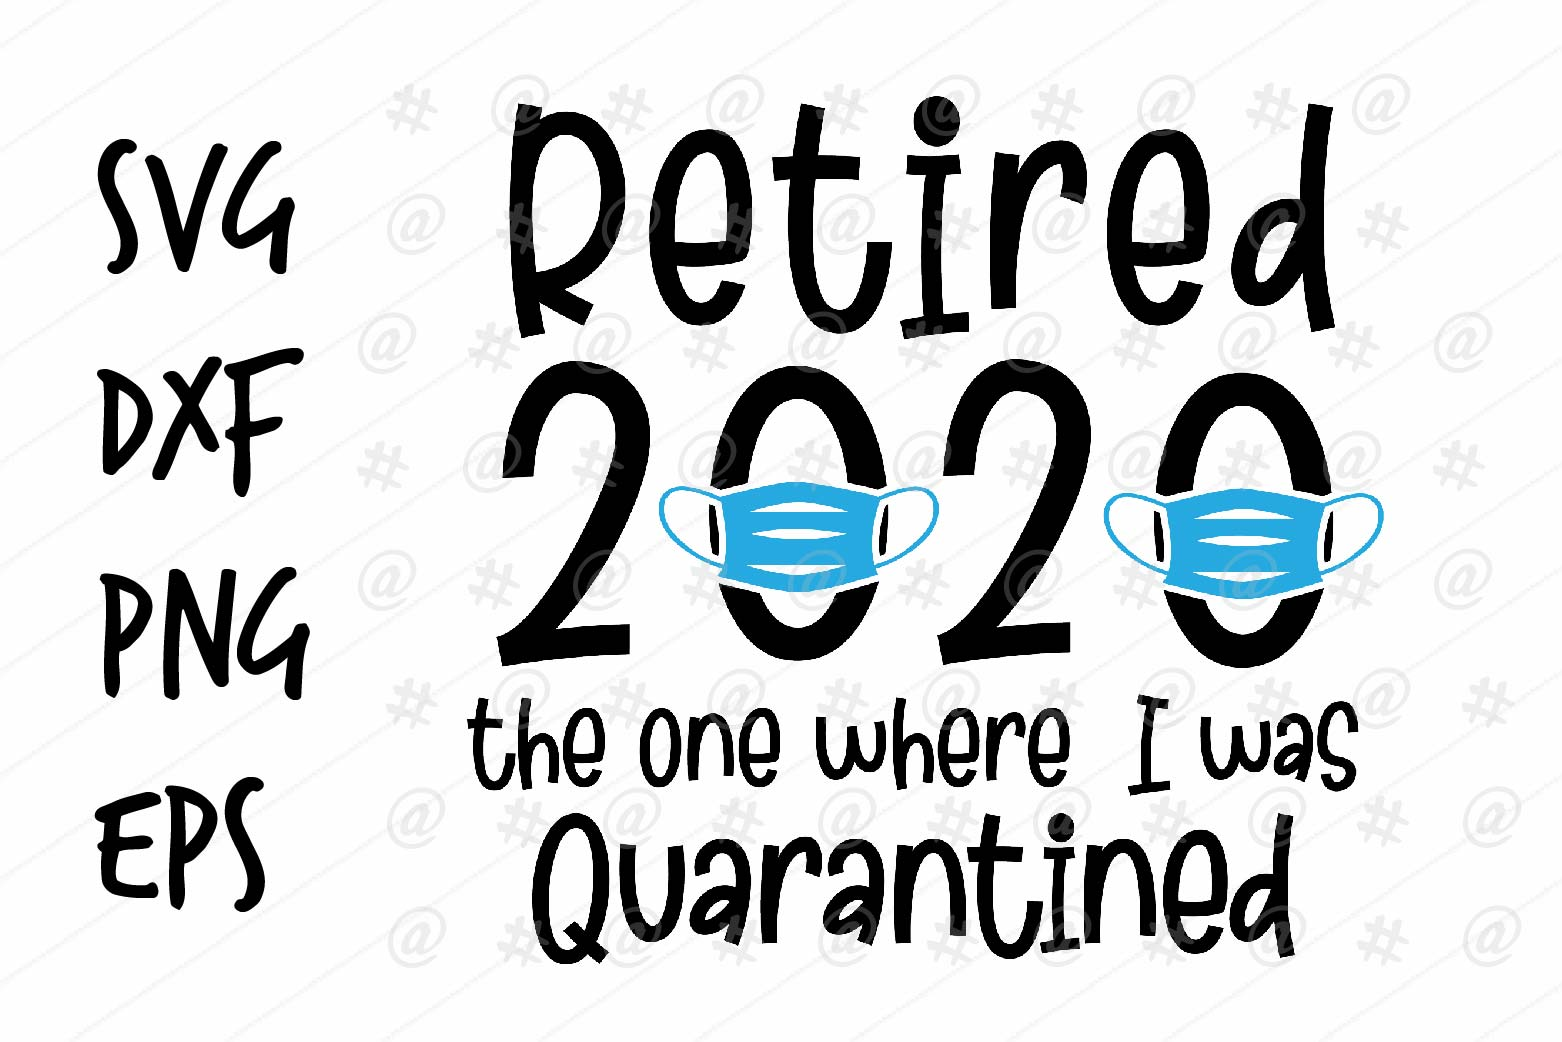 Download Free Retired 2020 Quarantined Design Graphic By Spoonyprint for Cricut Explore, Silhouette and other cutting machines.